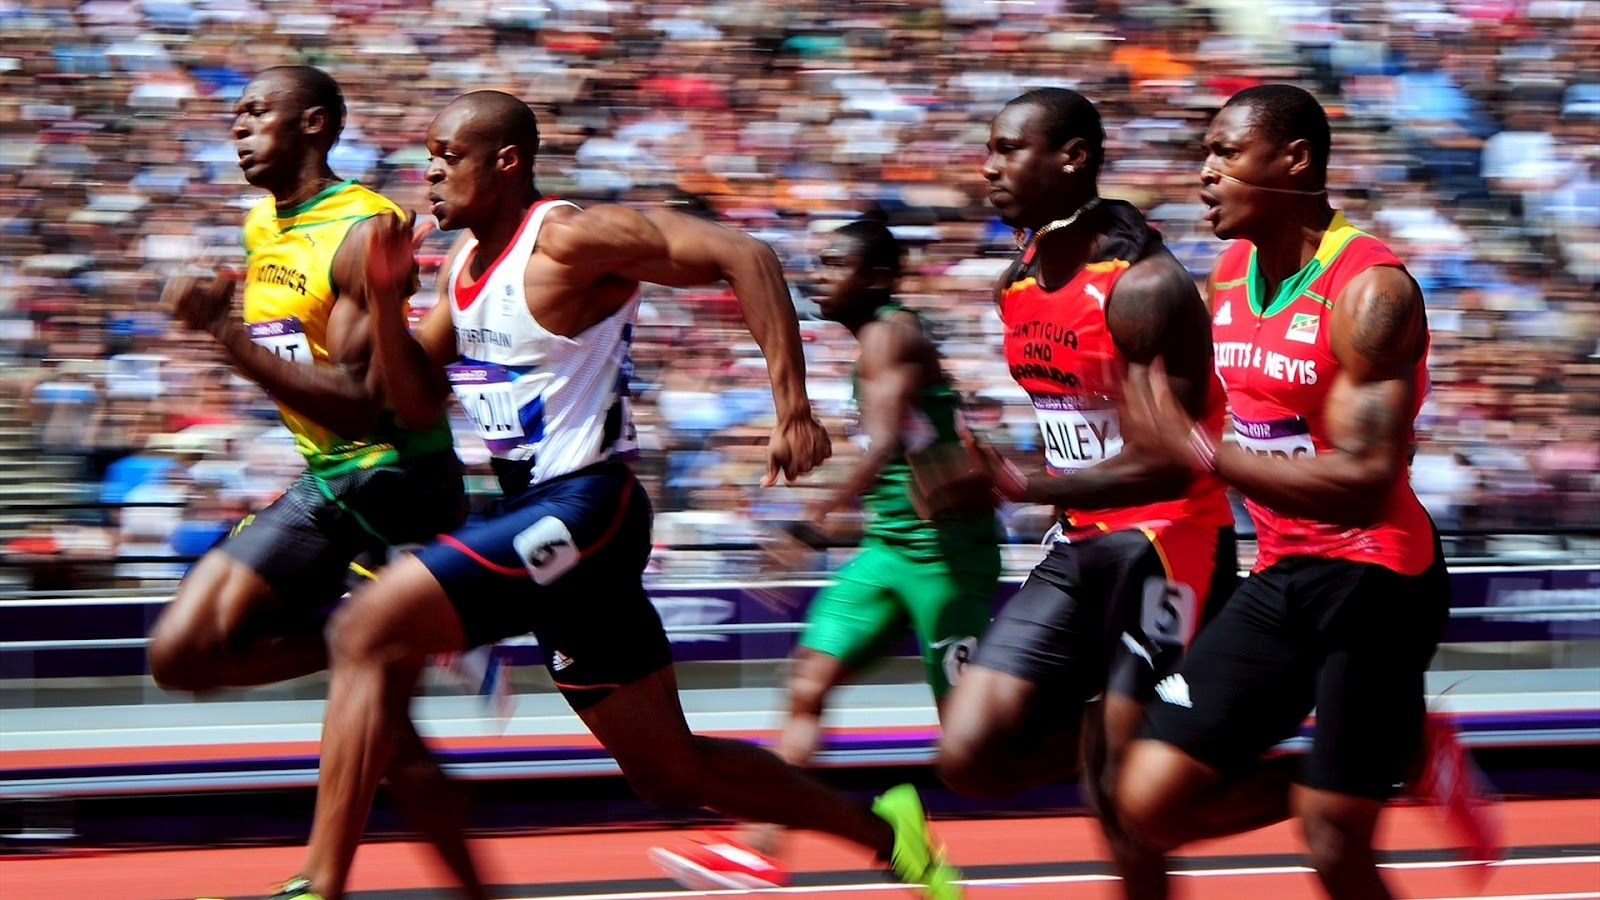 summer olympic games The modern olympic games or olympics (french: jeux olympiques) are leading international sporting events featuring summer and winter sports competitions in which thousands of athletes from.